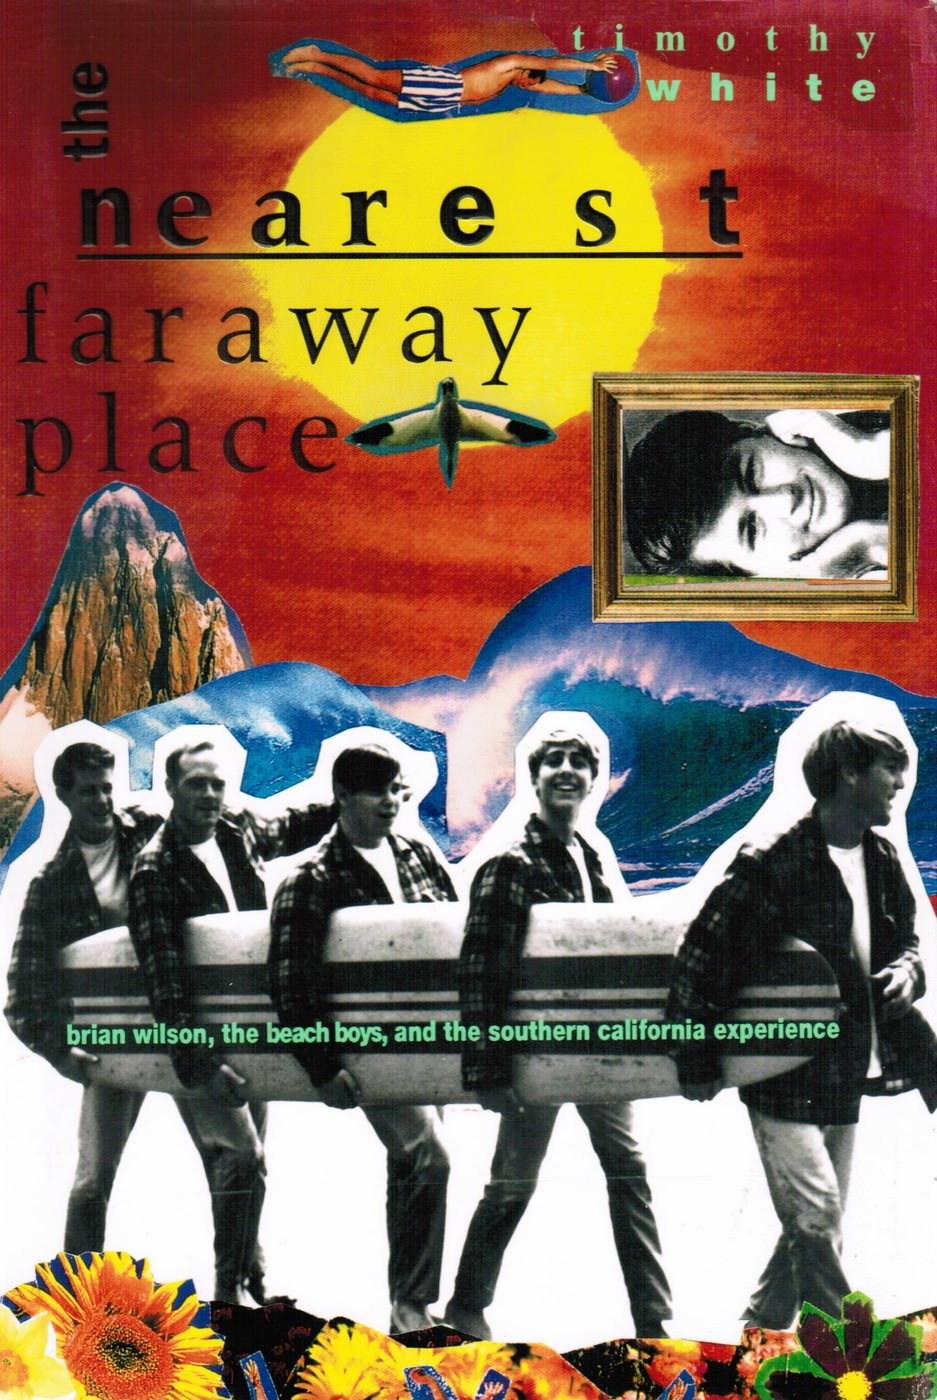 The Nearest Faraway Place cover